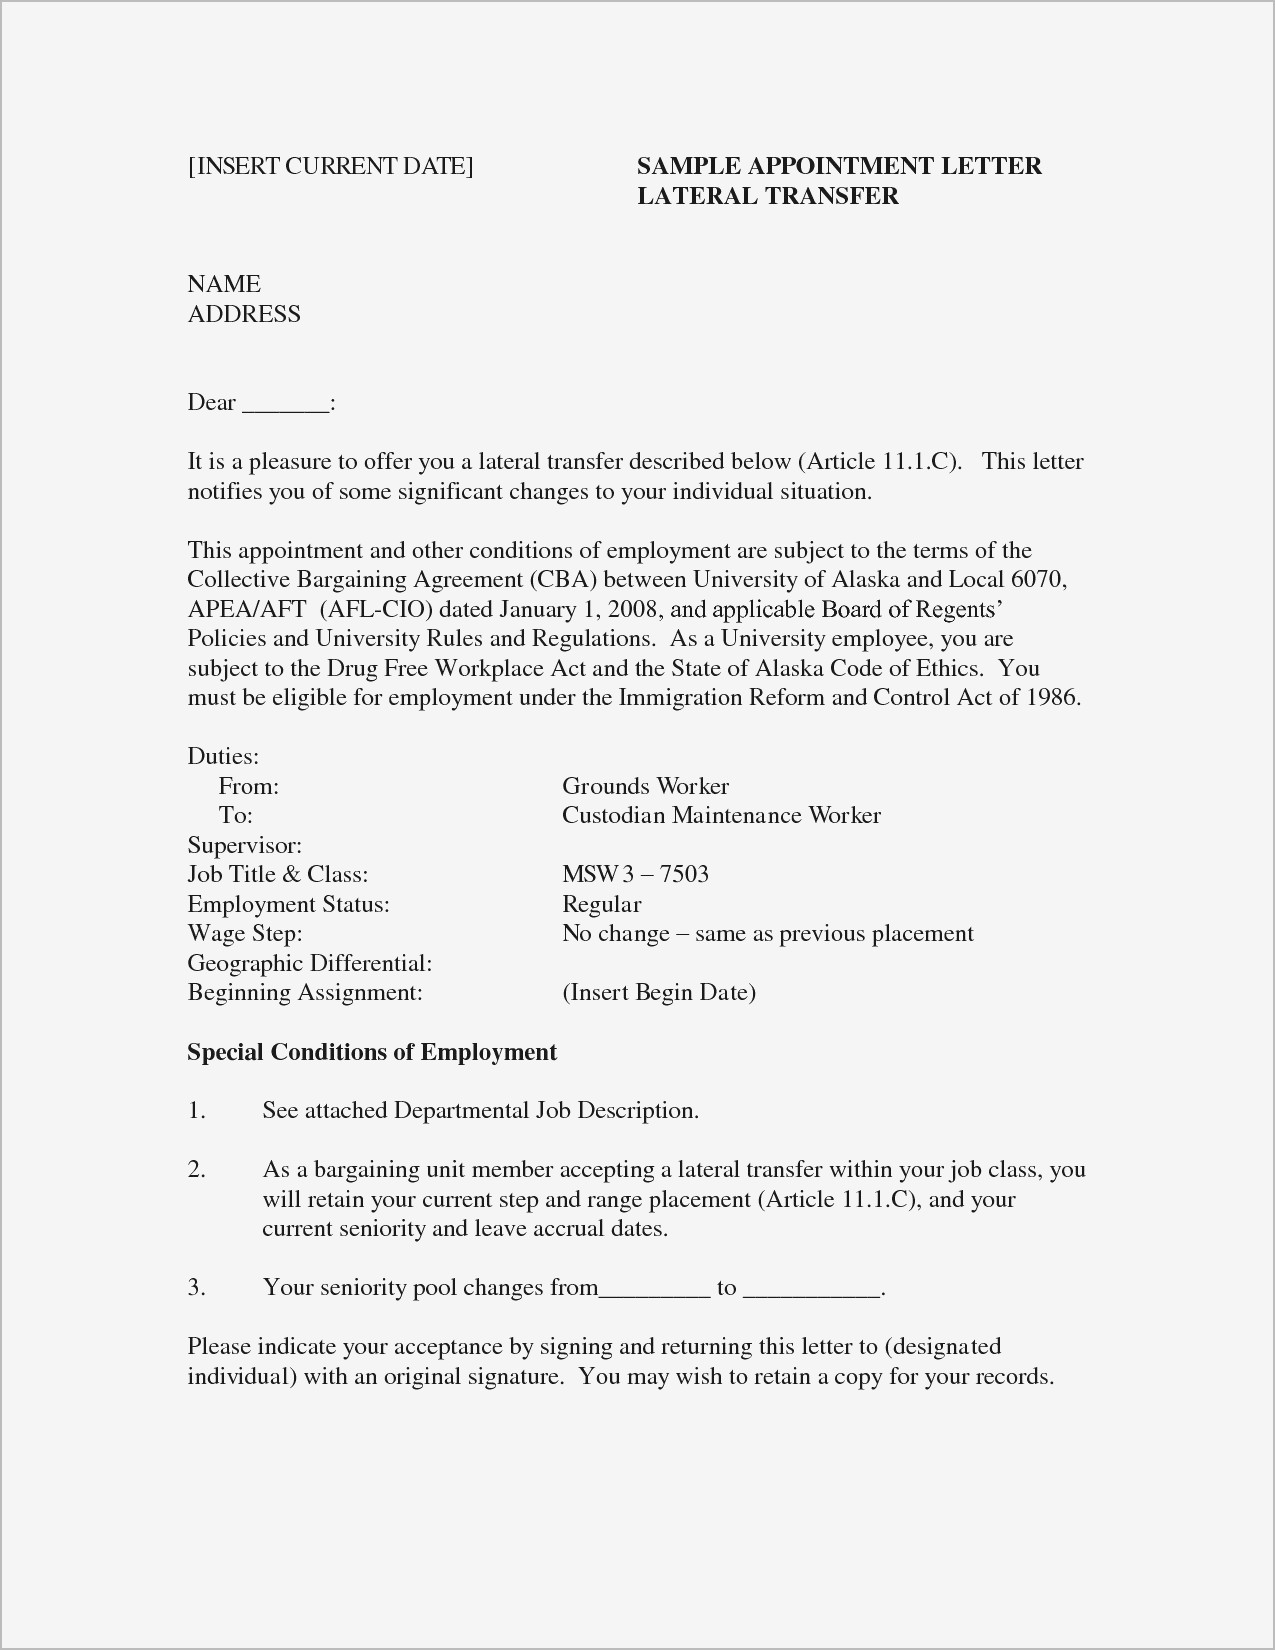 Letter Of Intent Template Microsoft Word - Job Letter Intent Examples Fresh Letter Intent Template Word